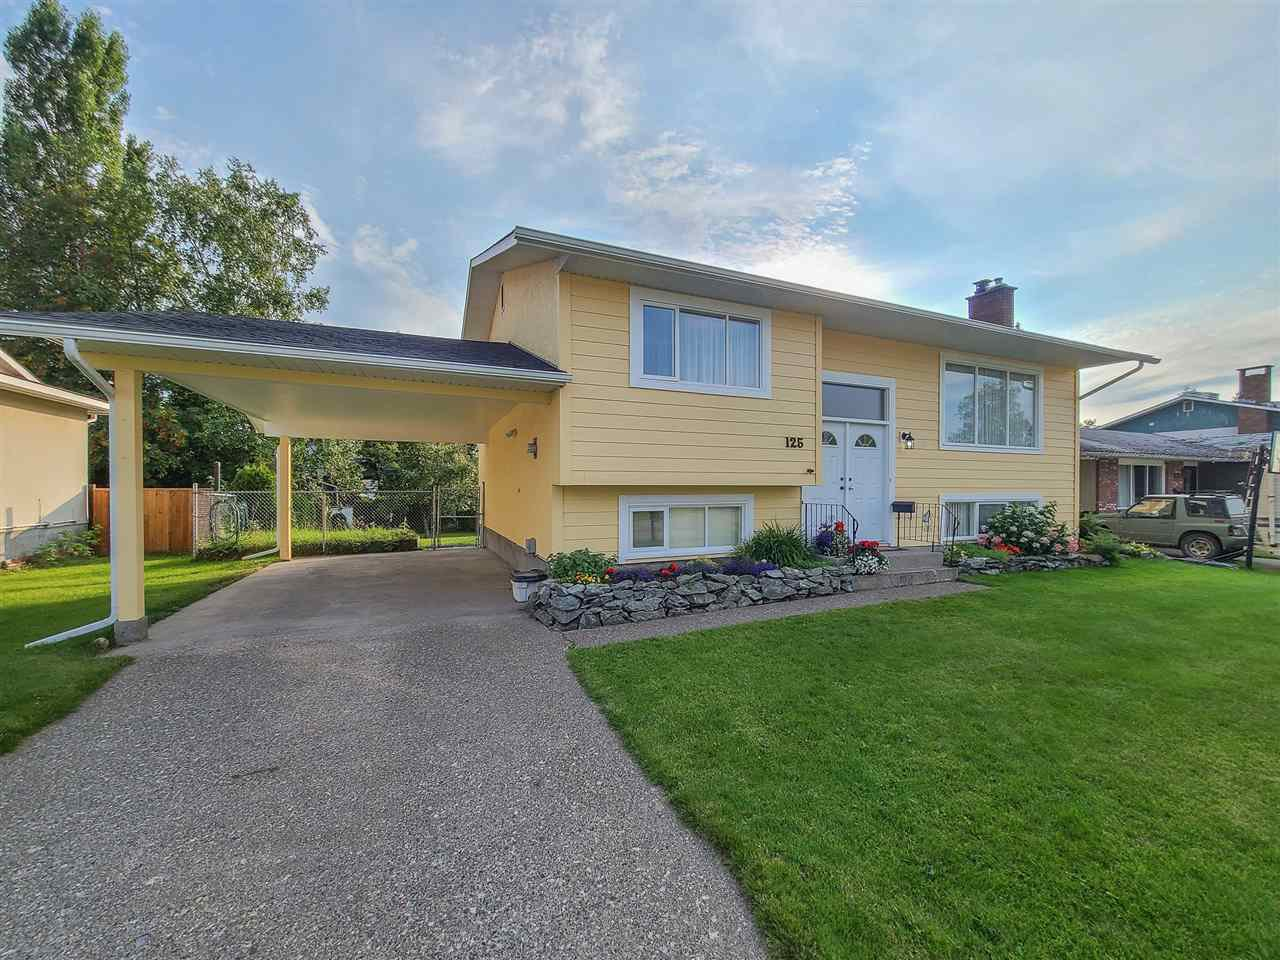 Main Photo: 125 MCDERMID Drive in Prince George: Highland Park House for sale (PG City West (Zone 71))  : MLS®# R2494604